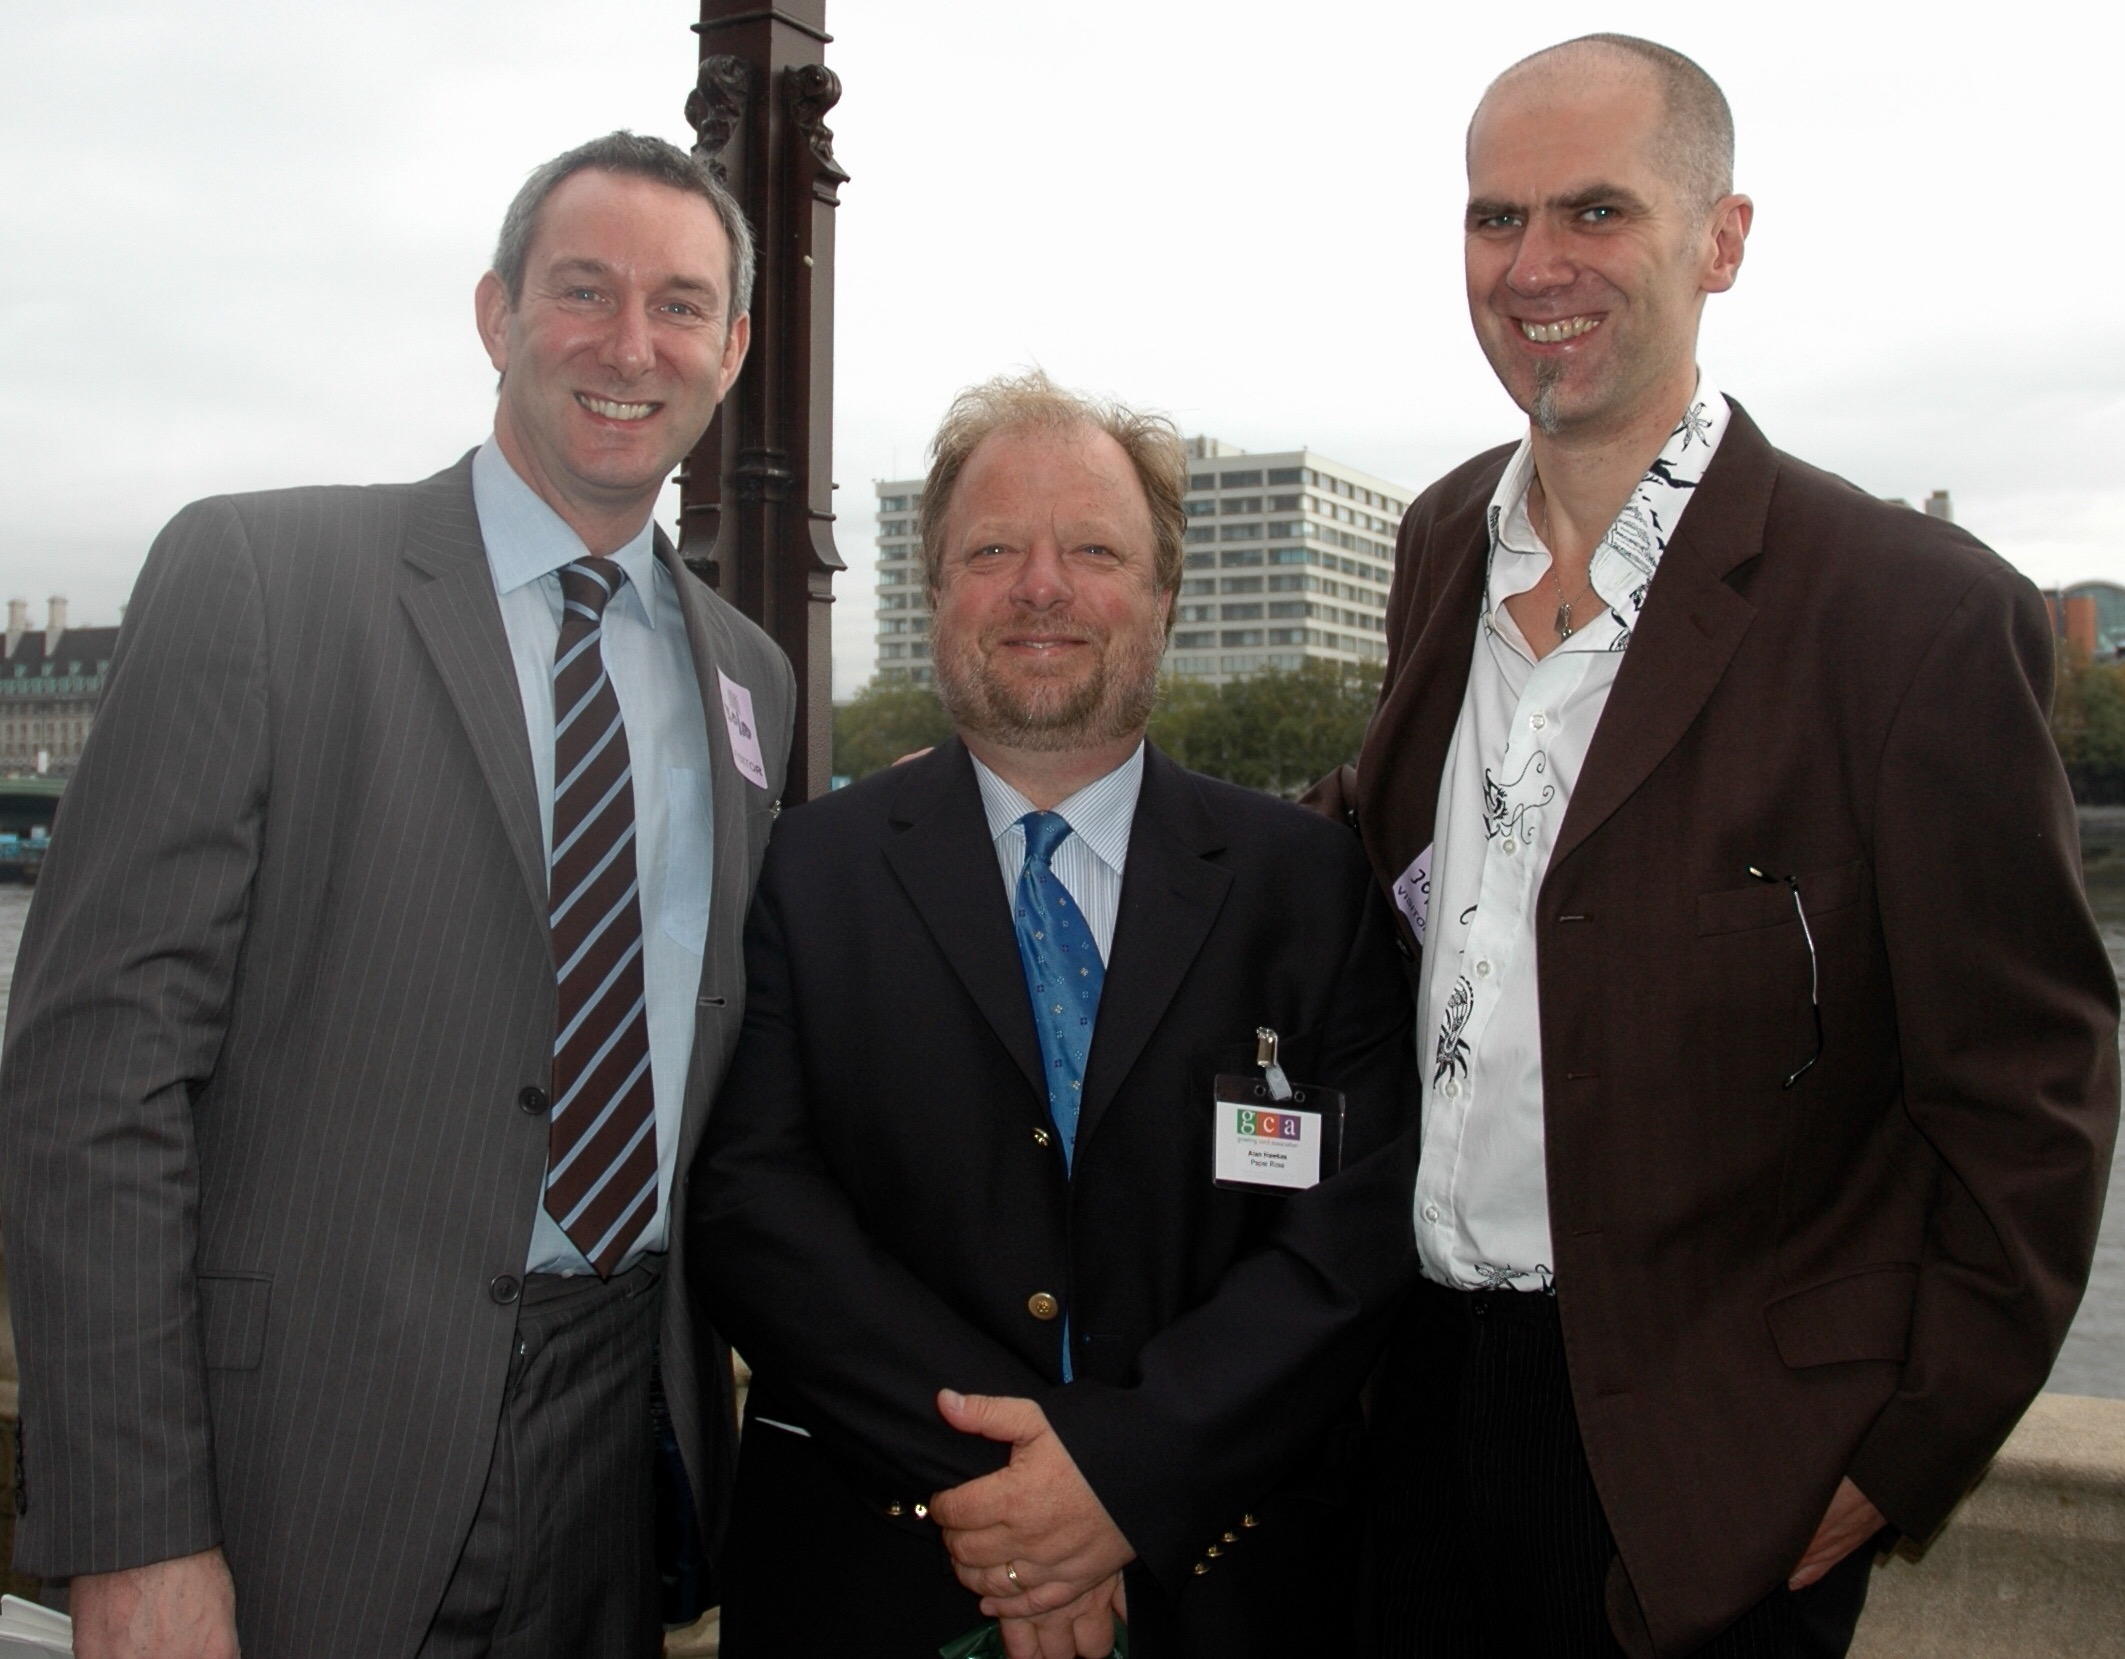 Above: At the House of Commons (at a GCA AGM) with industry chums Ged Mace (left) and Alan Hawkes (former owner of Paper Rose).